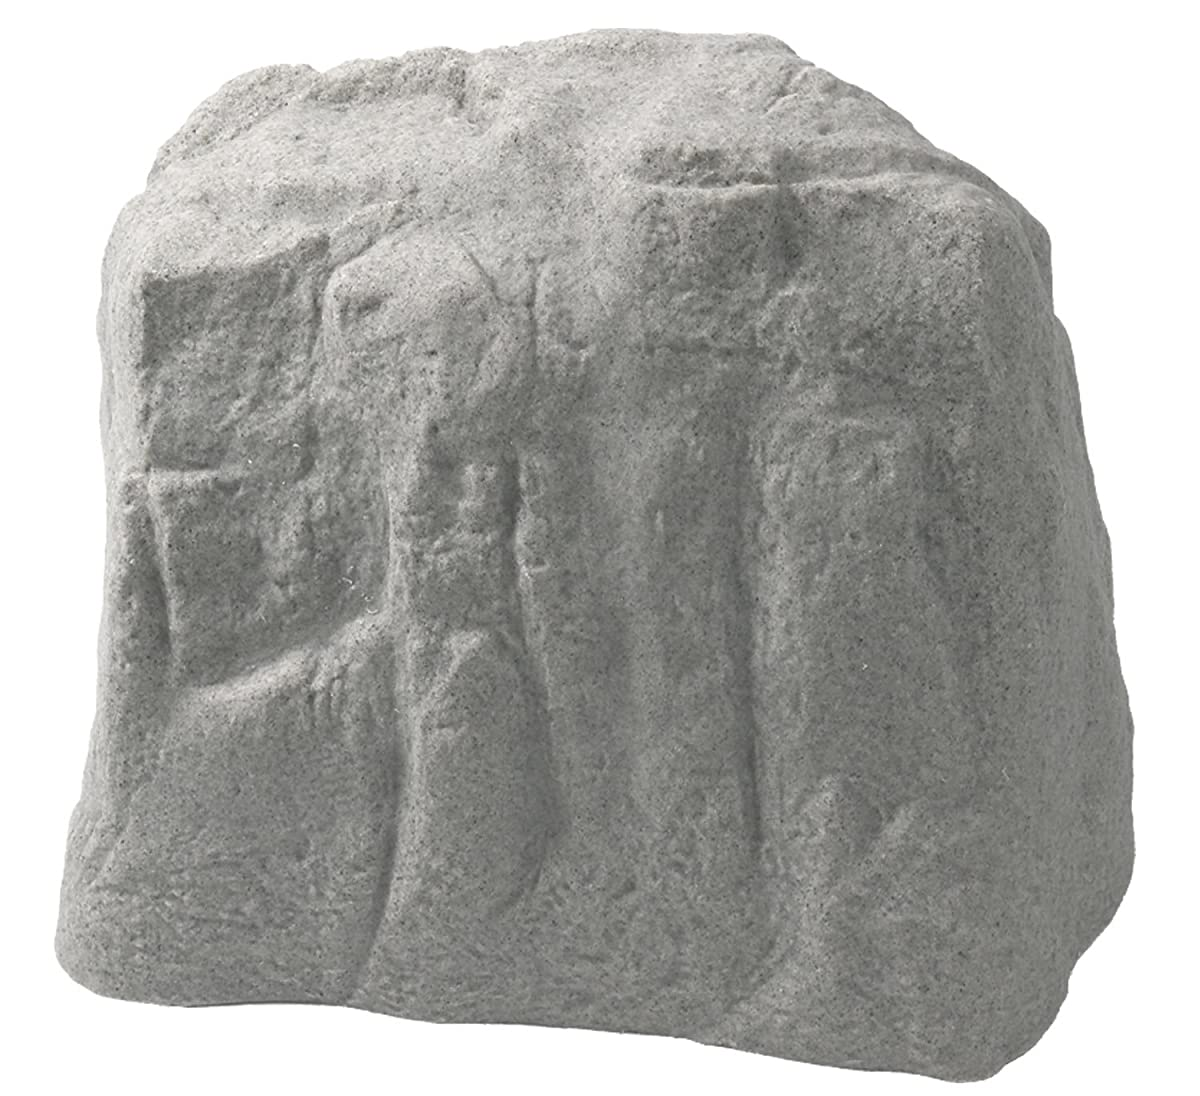 Emsco Group Landscape Rock – Natural Granite Appearance – Large – Lightweight – Easy to Install